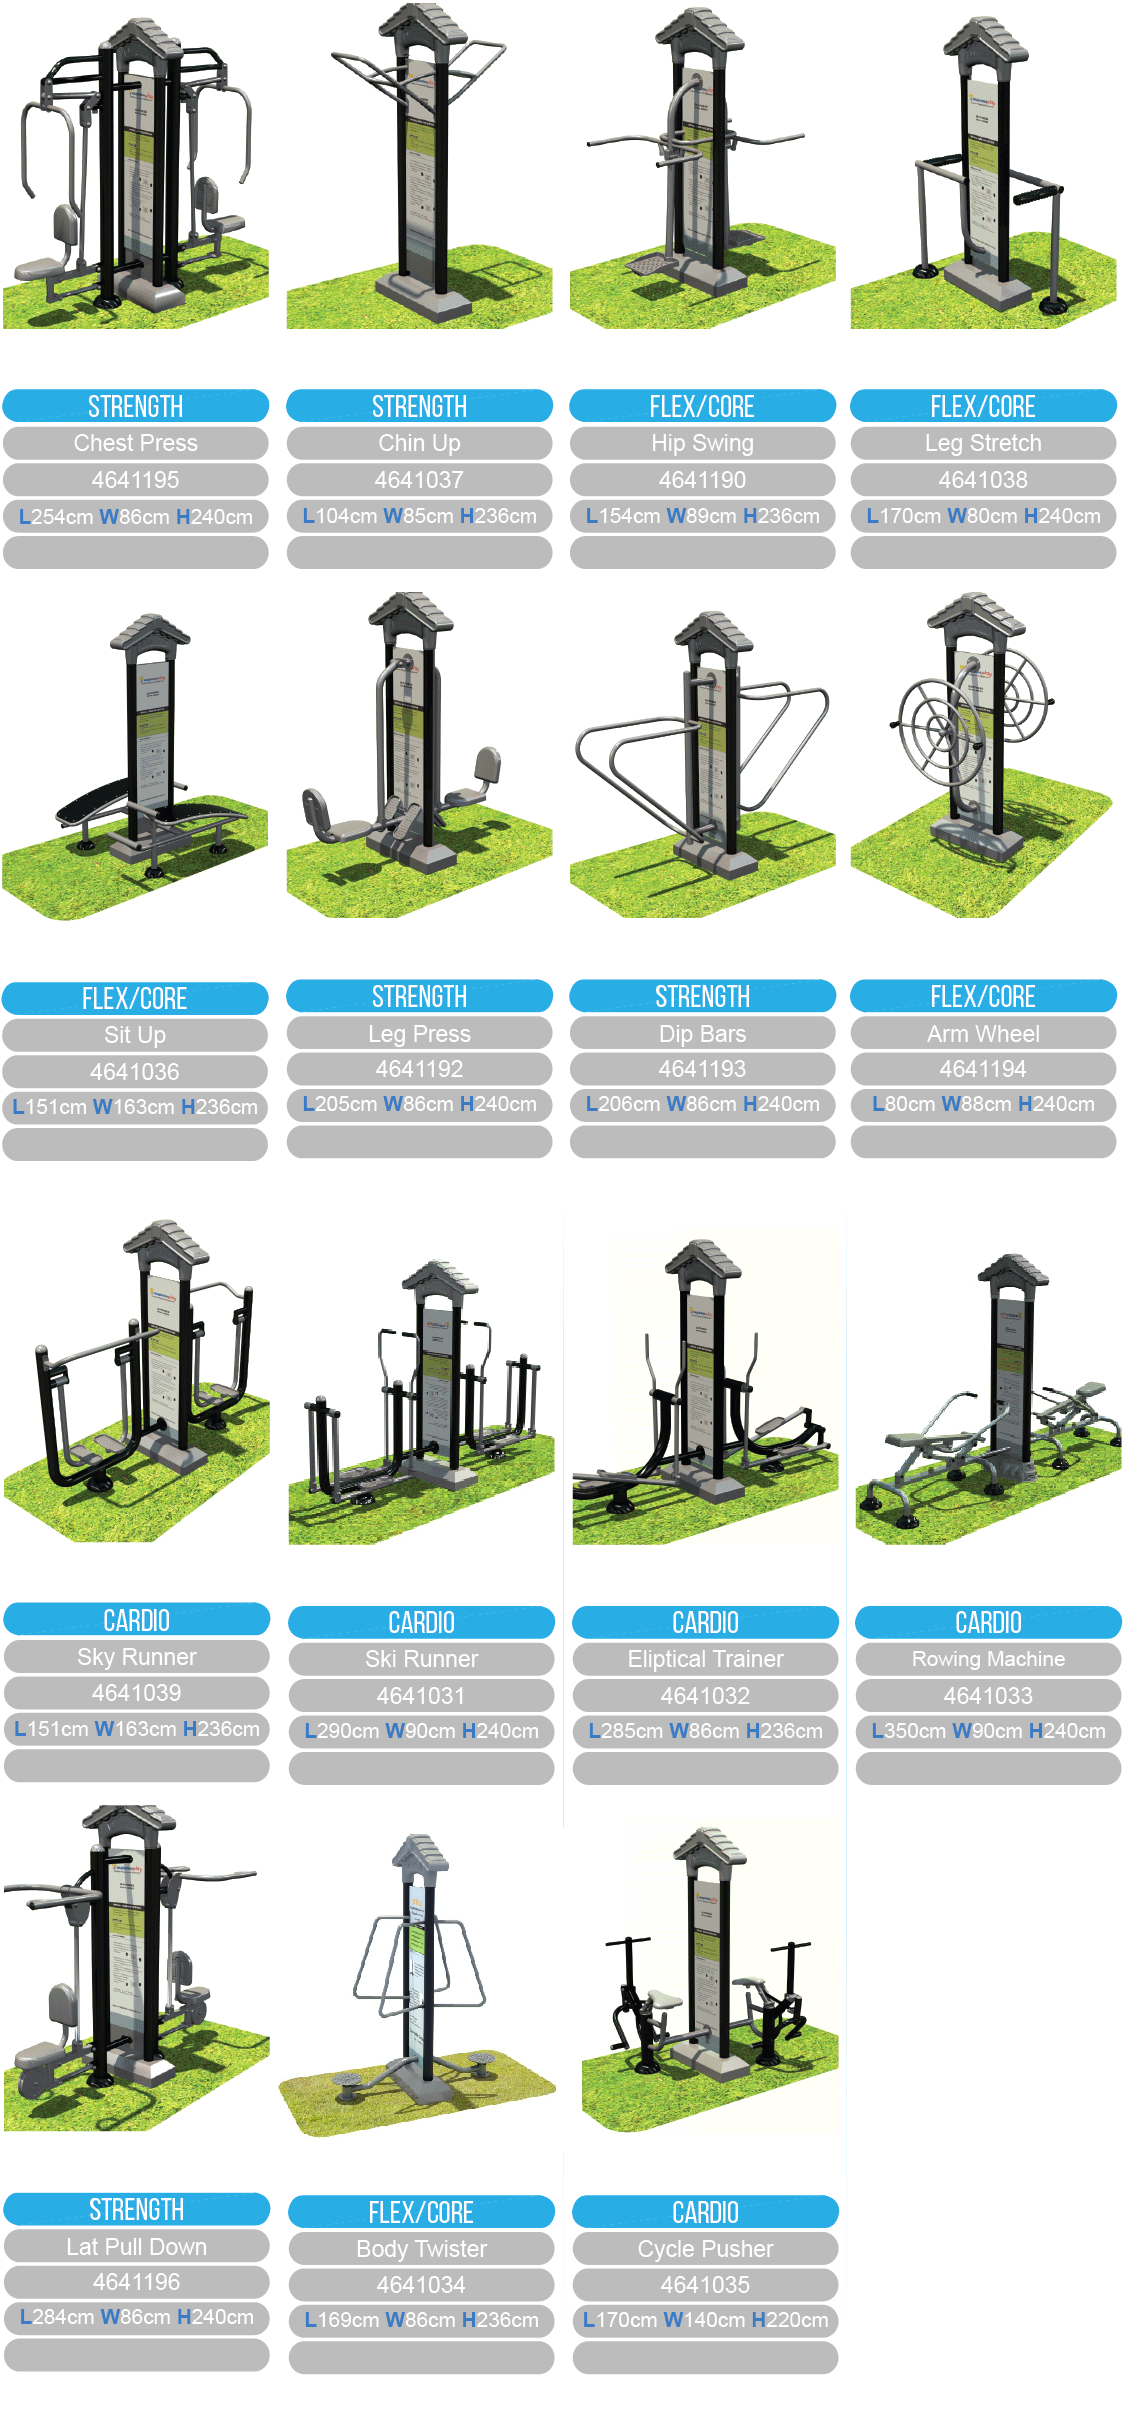 Royal fitness equipment range